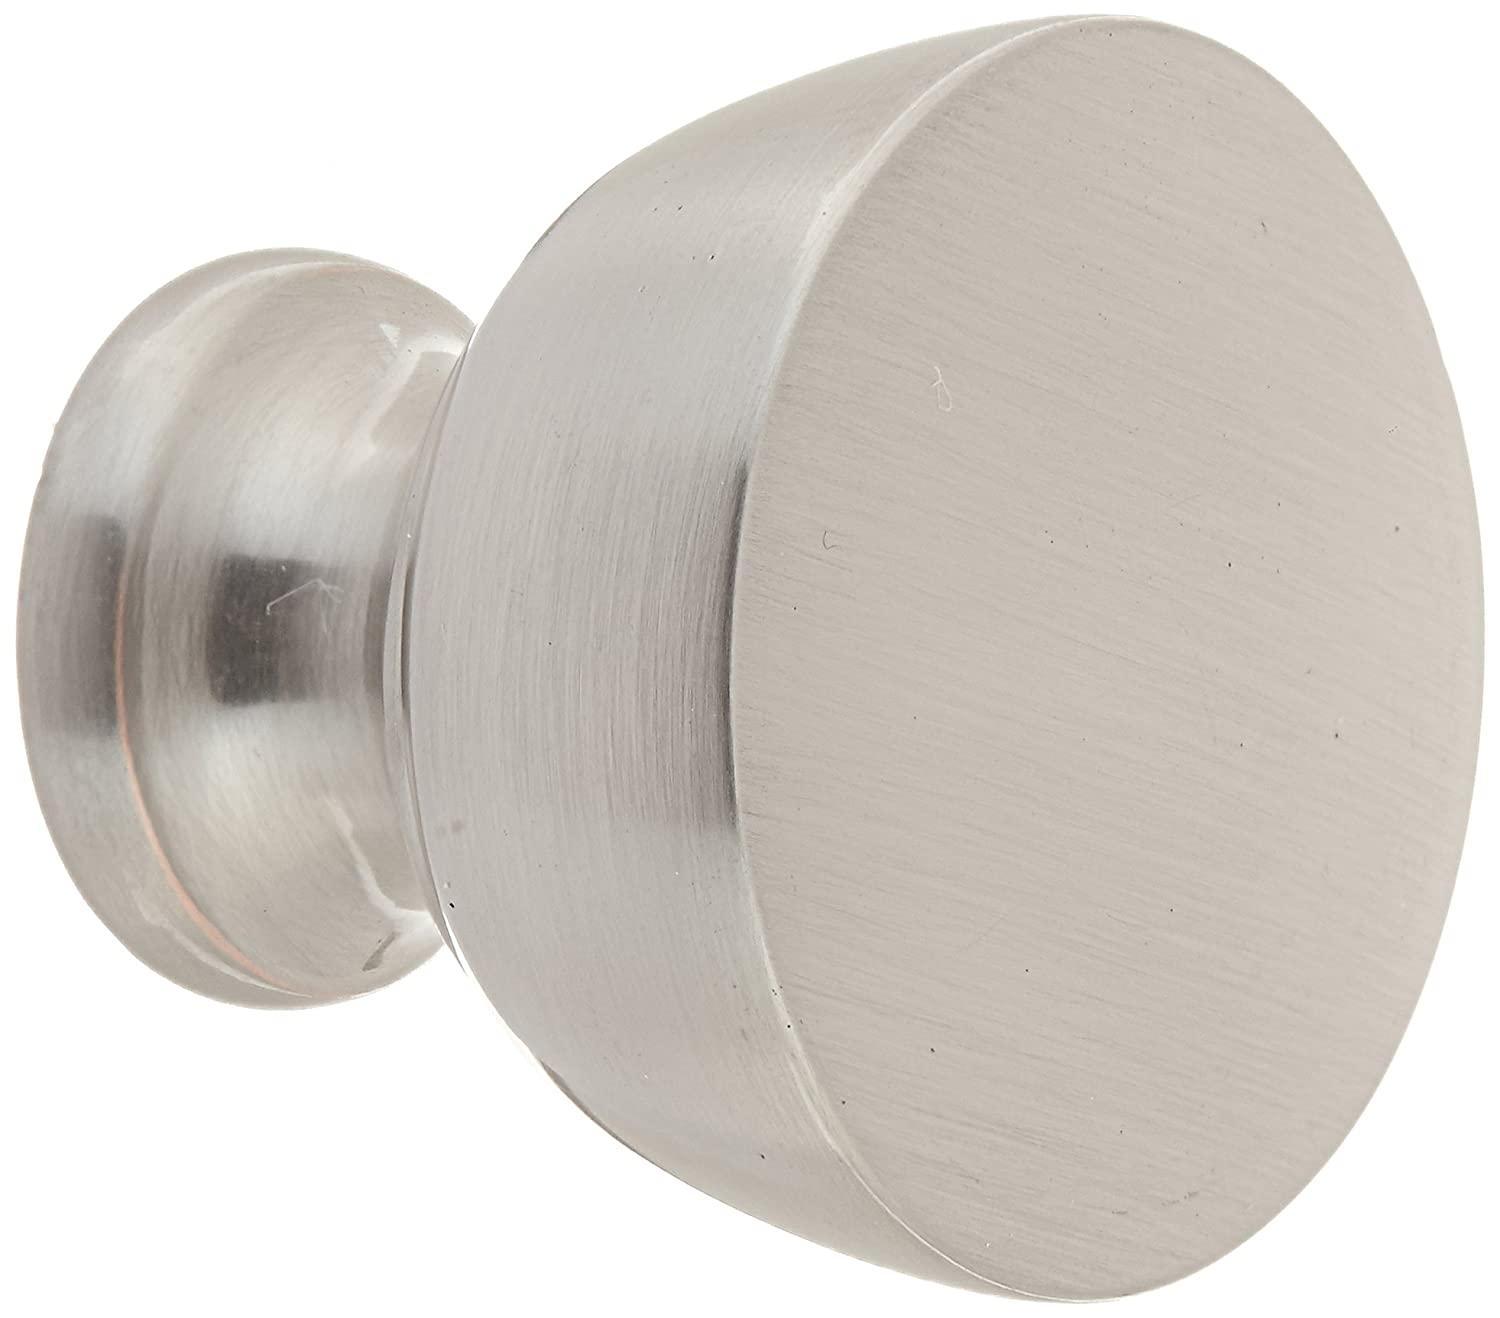 Satin Nickel Cabinet Knobs By Southern Hills   Brushed Nickel Knobs   Round    Pack Of